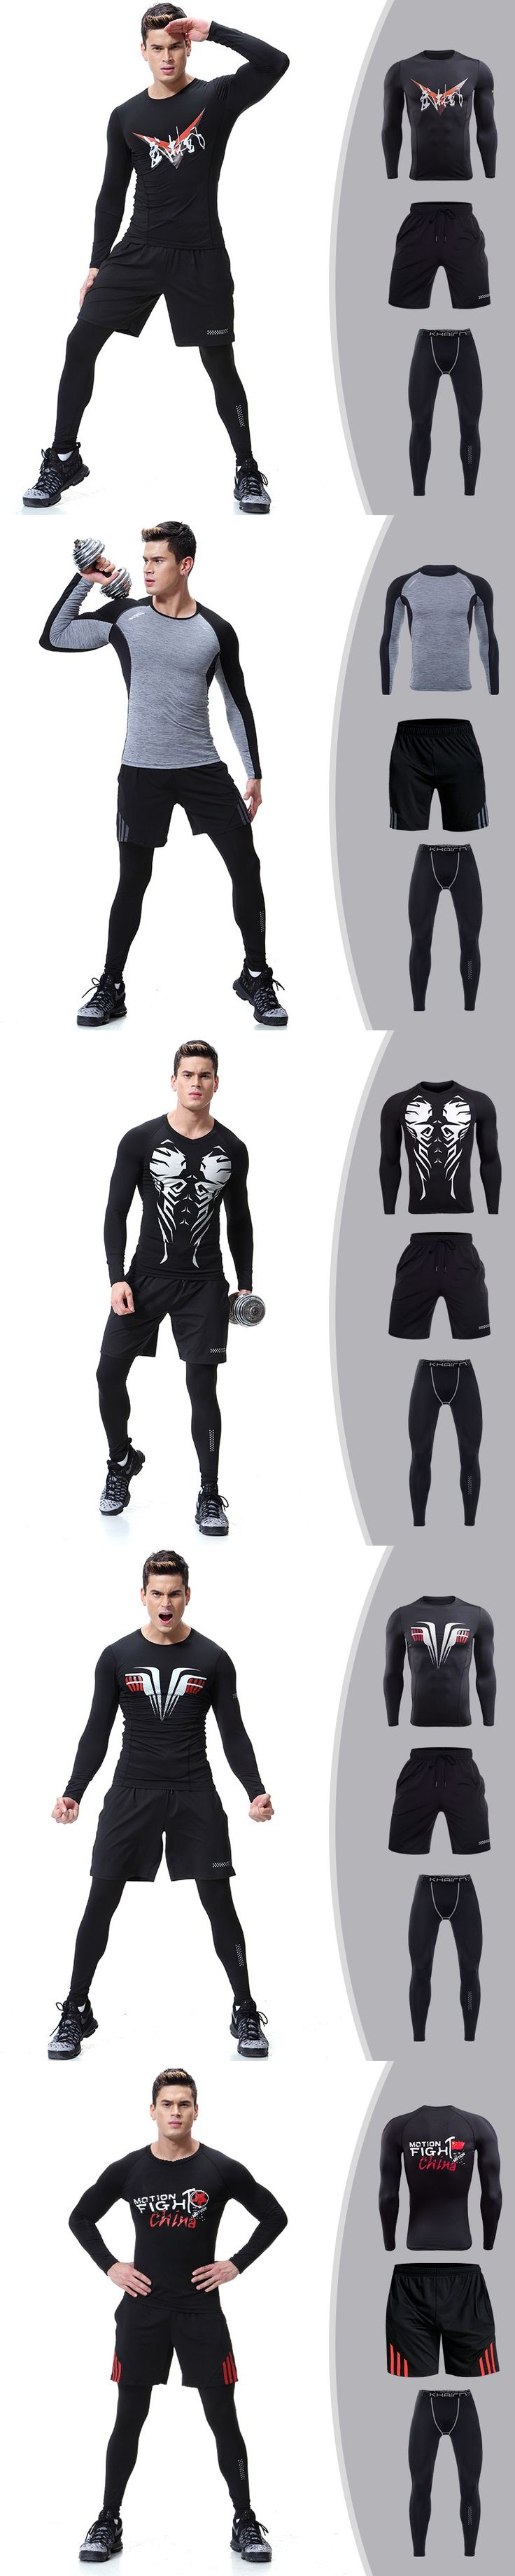 Autumn and Winter New Men's Long Sleeves Tight Three-piece Suit (T-shirt, Leggings, Shorts)